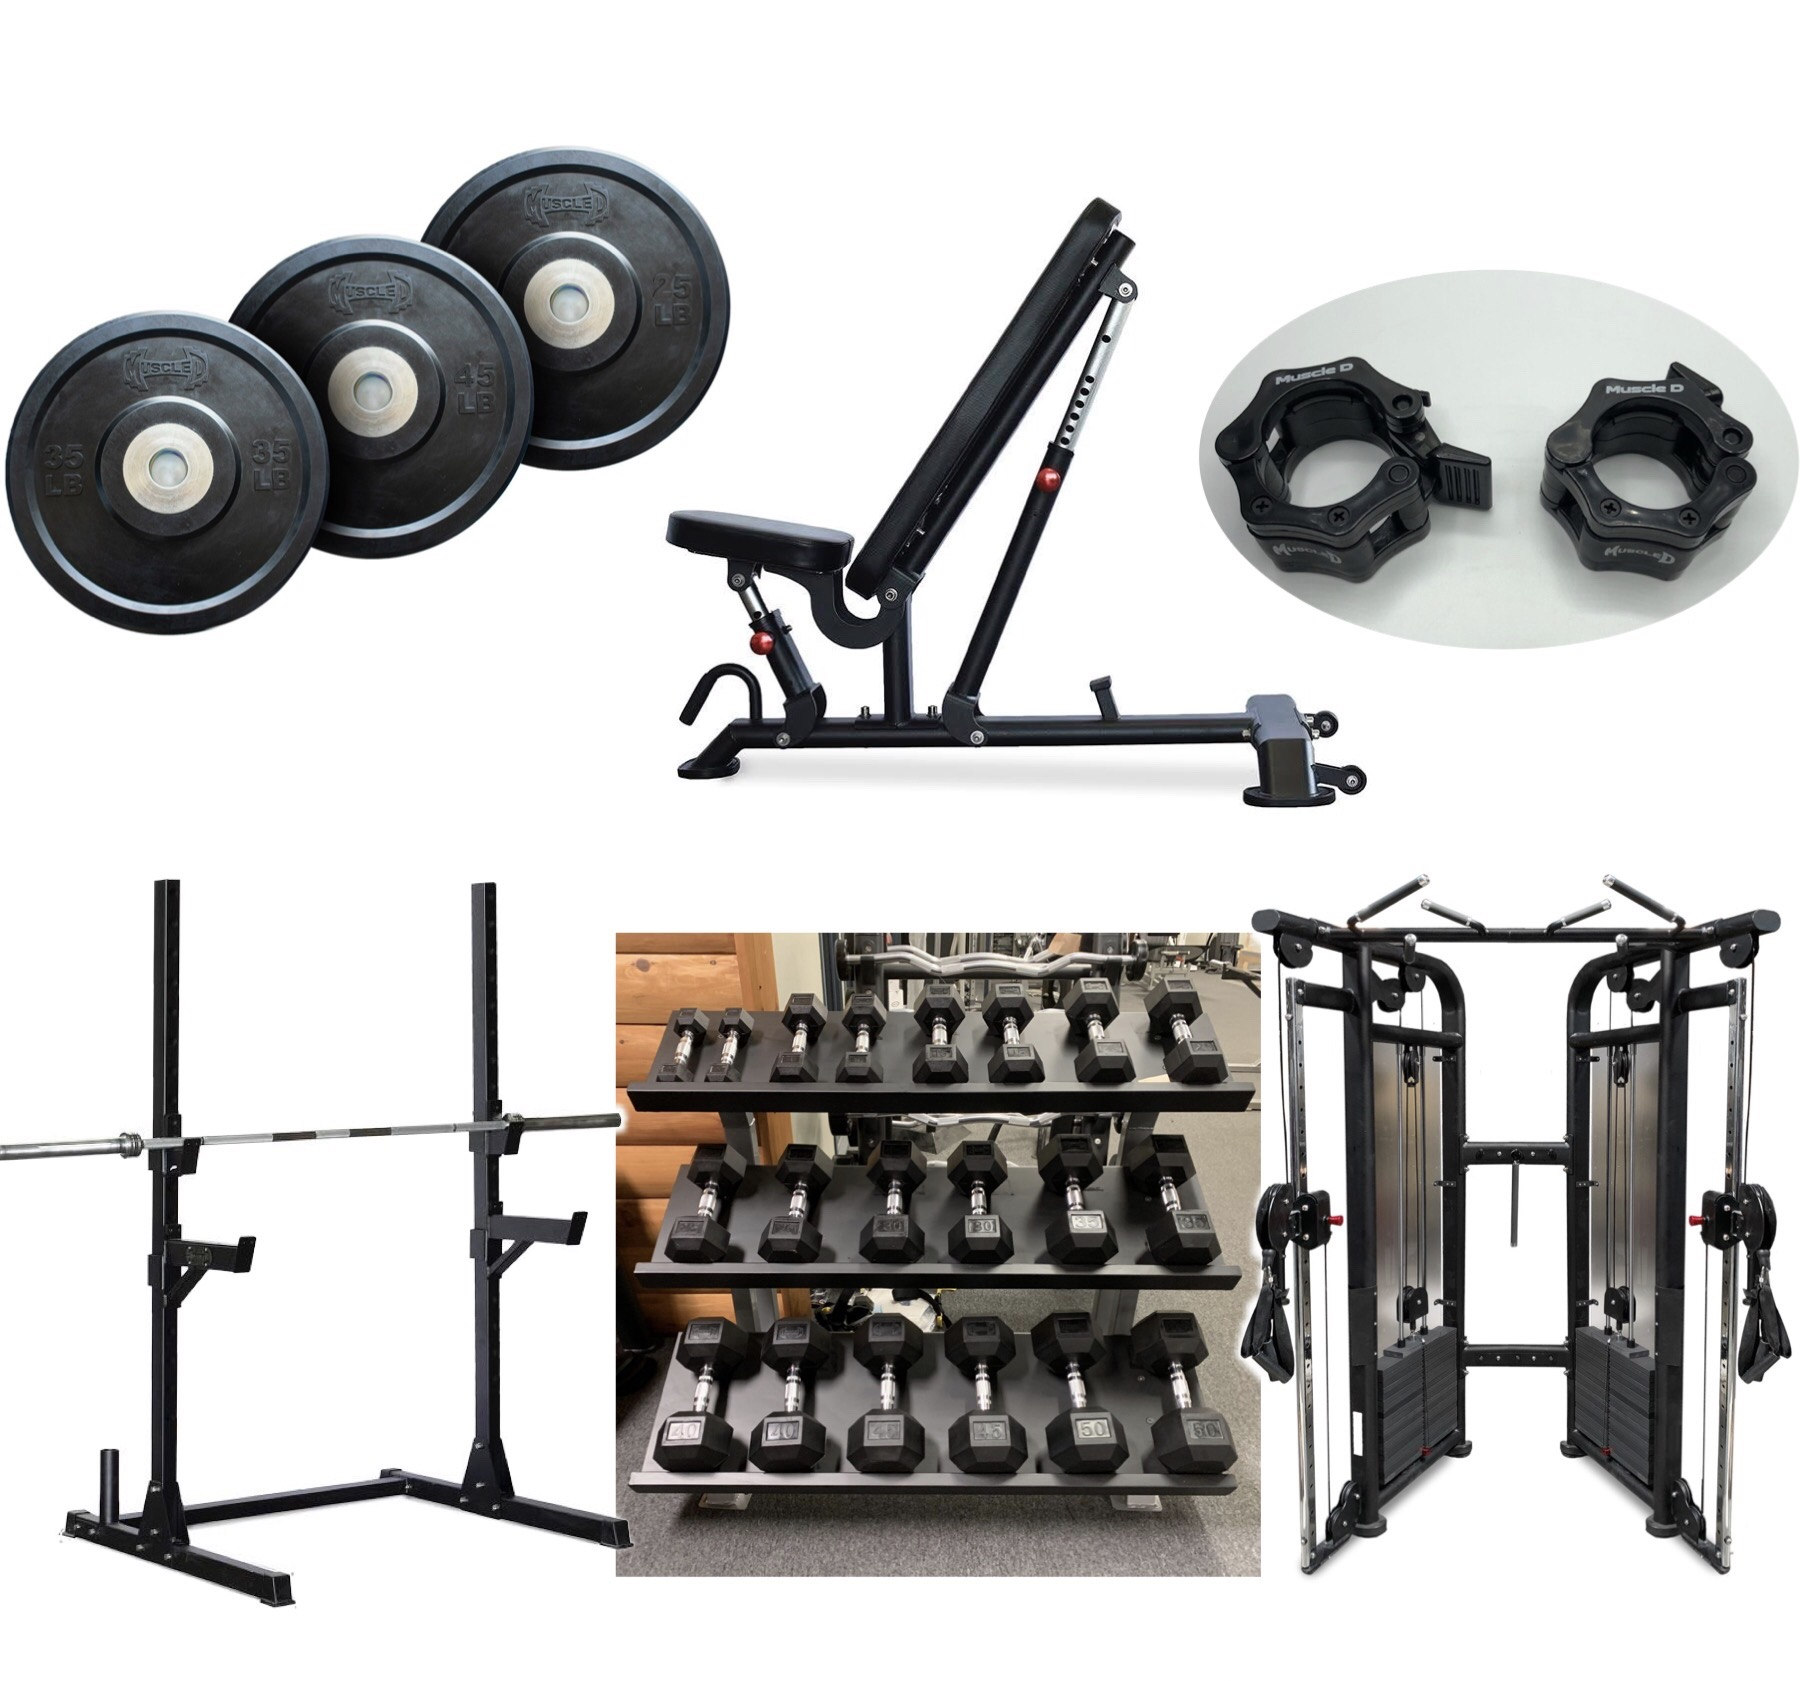 Muscle D- Home Gym Equipment Package